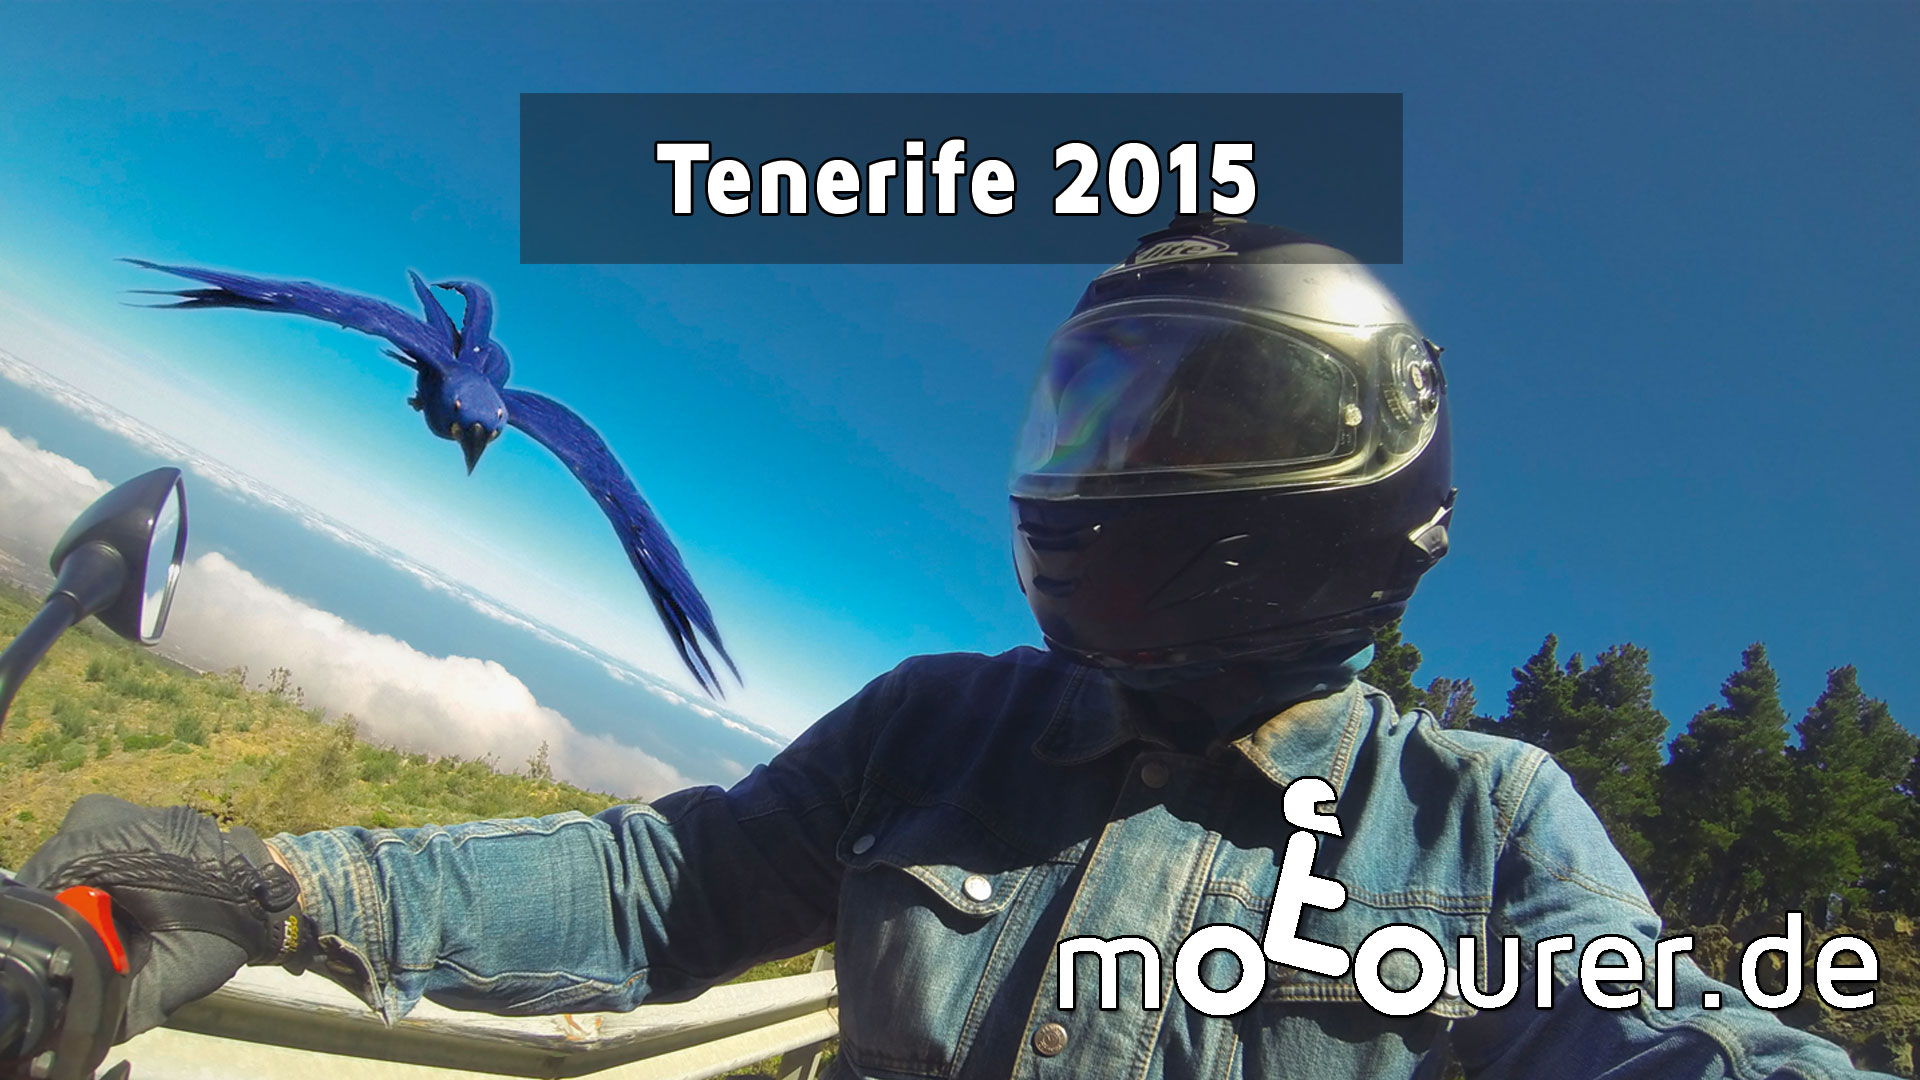 Tenerife 2015 - The Movie